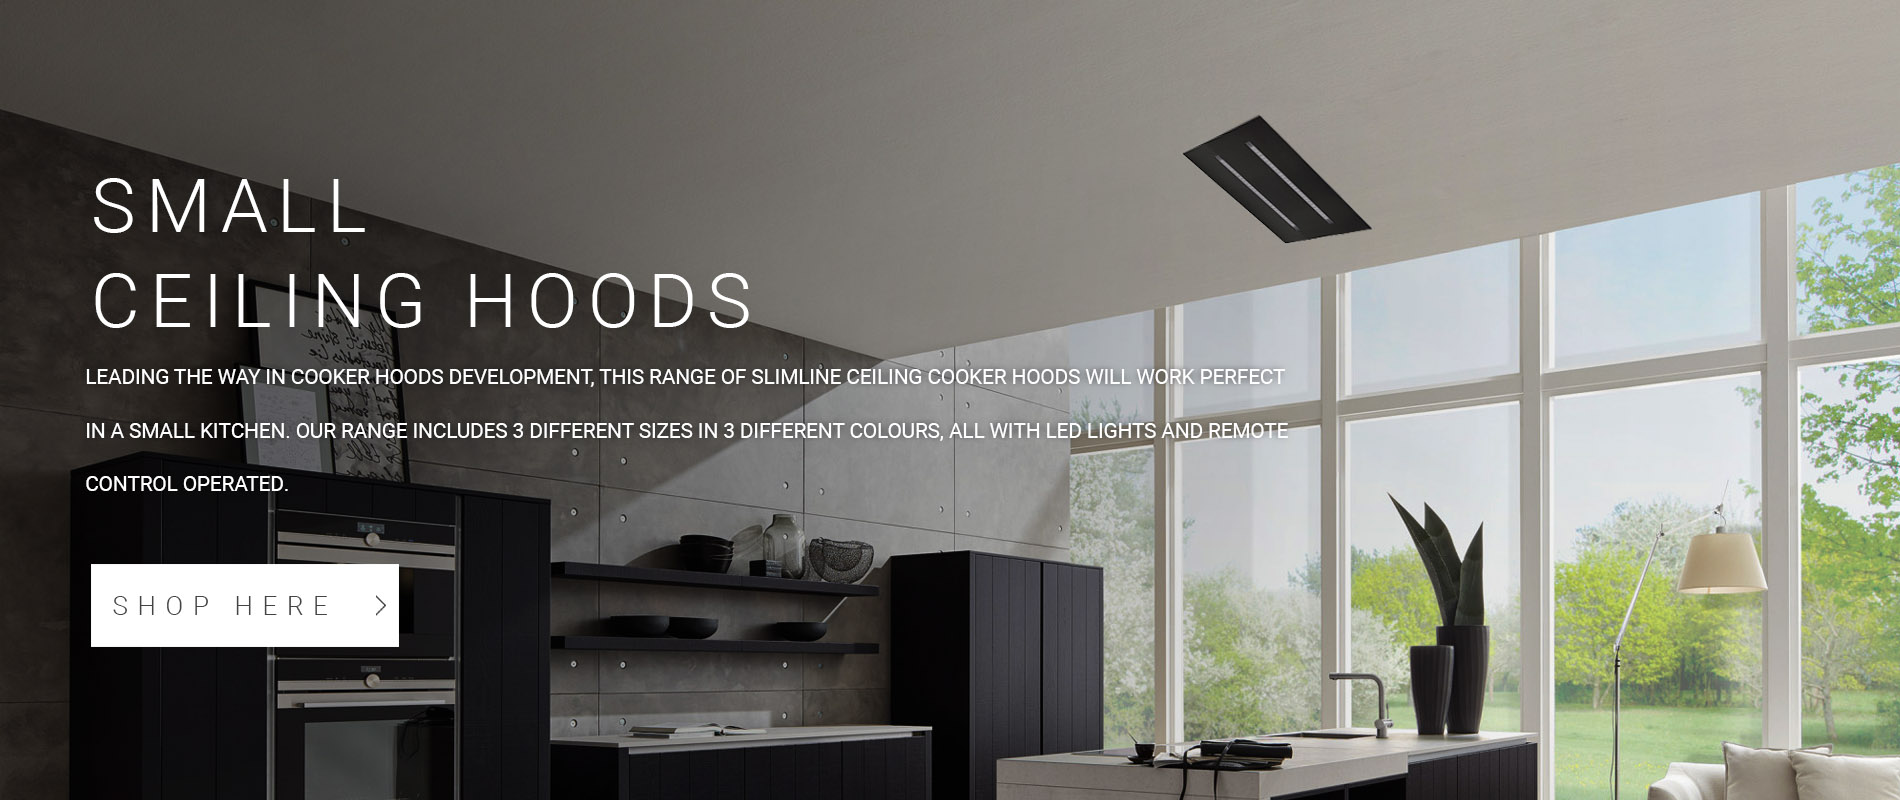 Small Ceiling Cooker Hoods